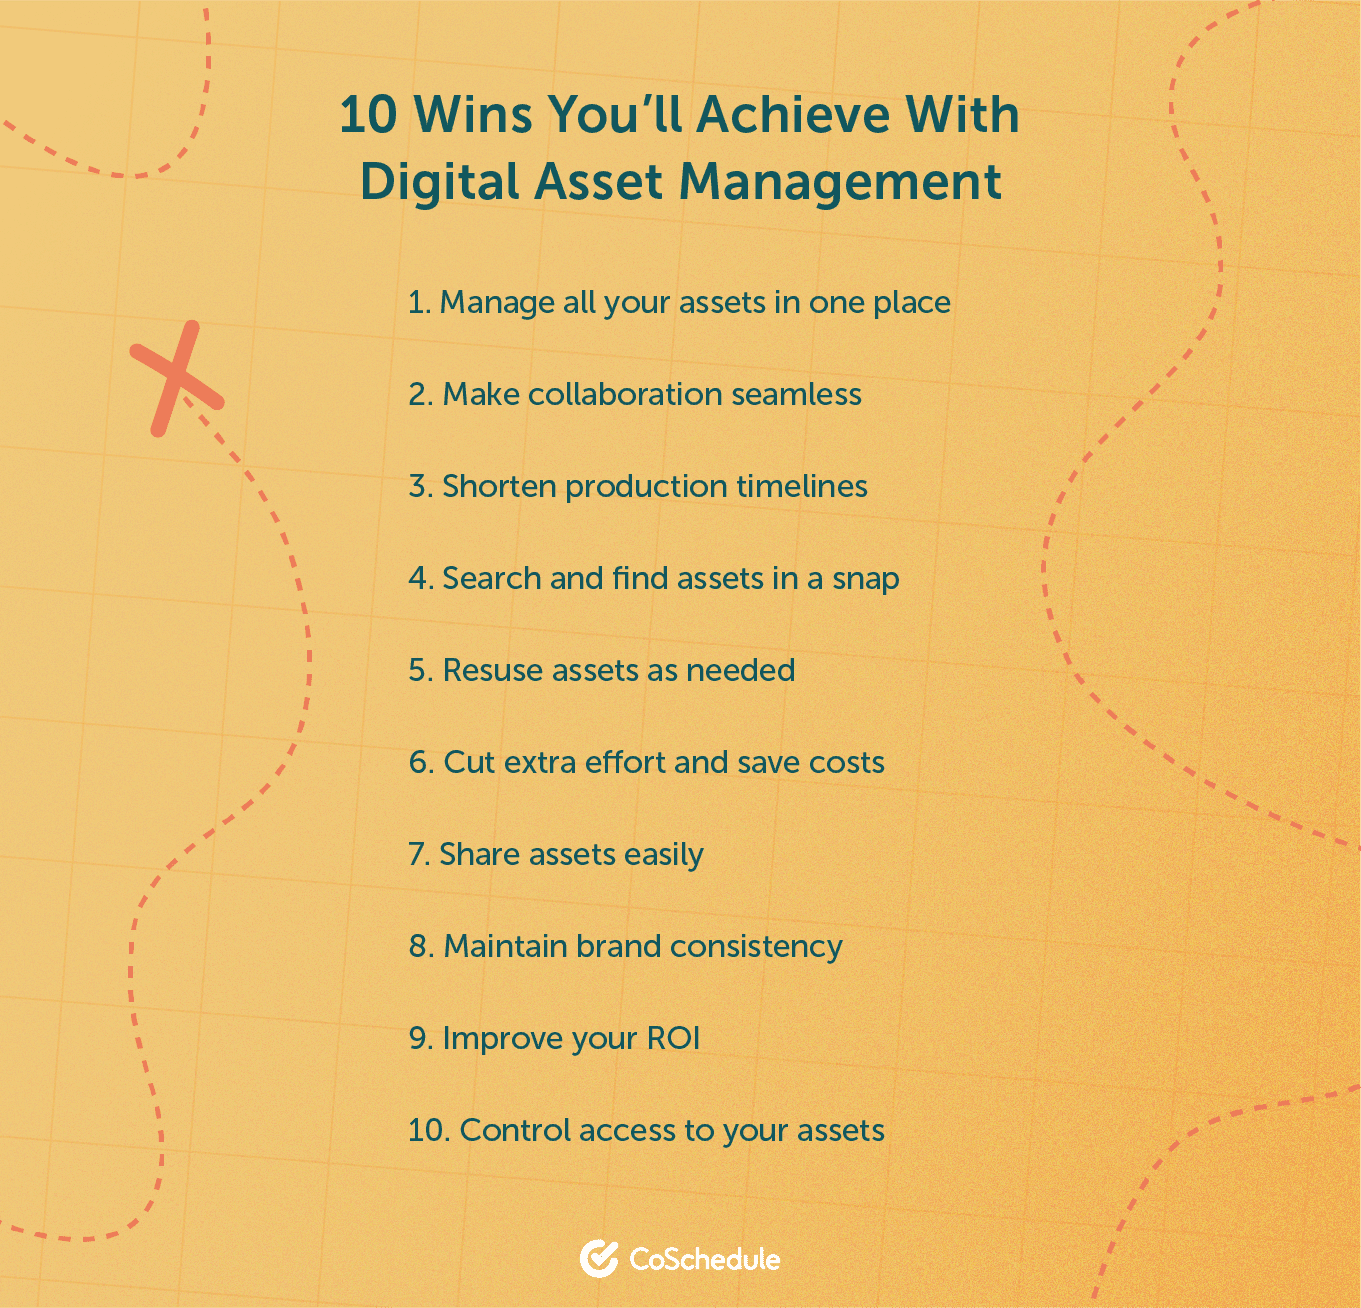 10 wins you'll achieve with digital asset management